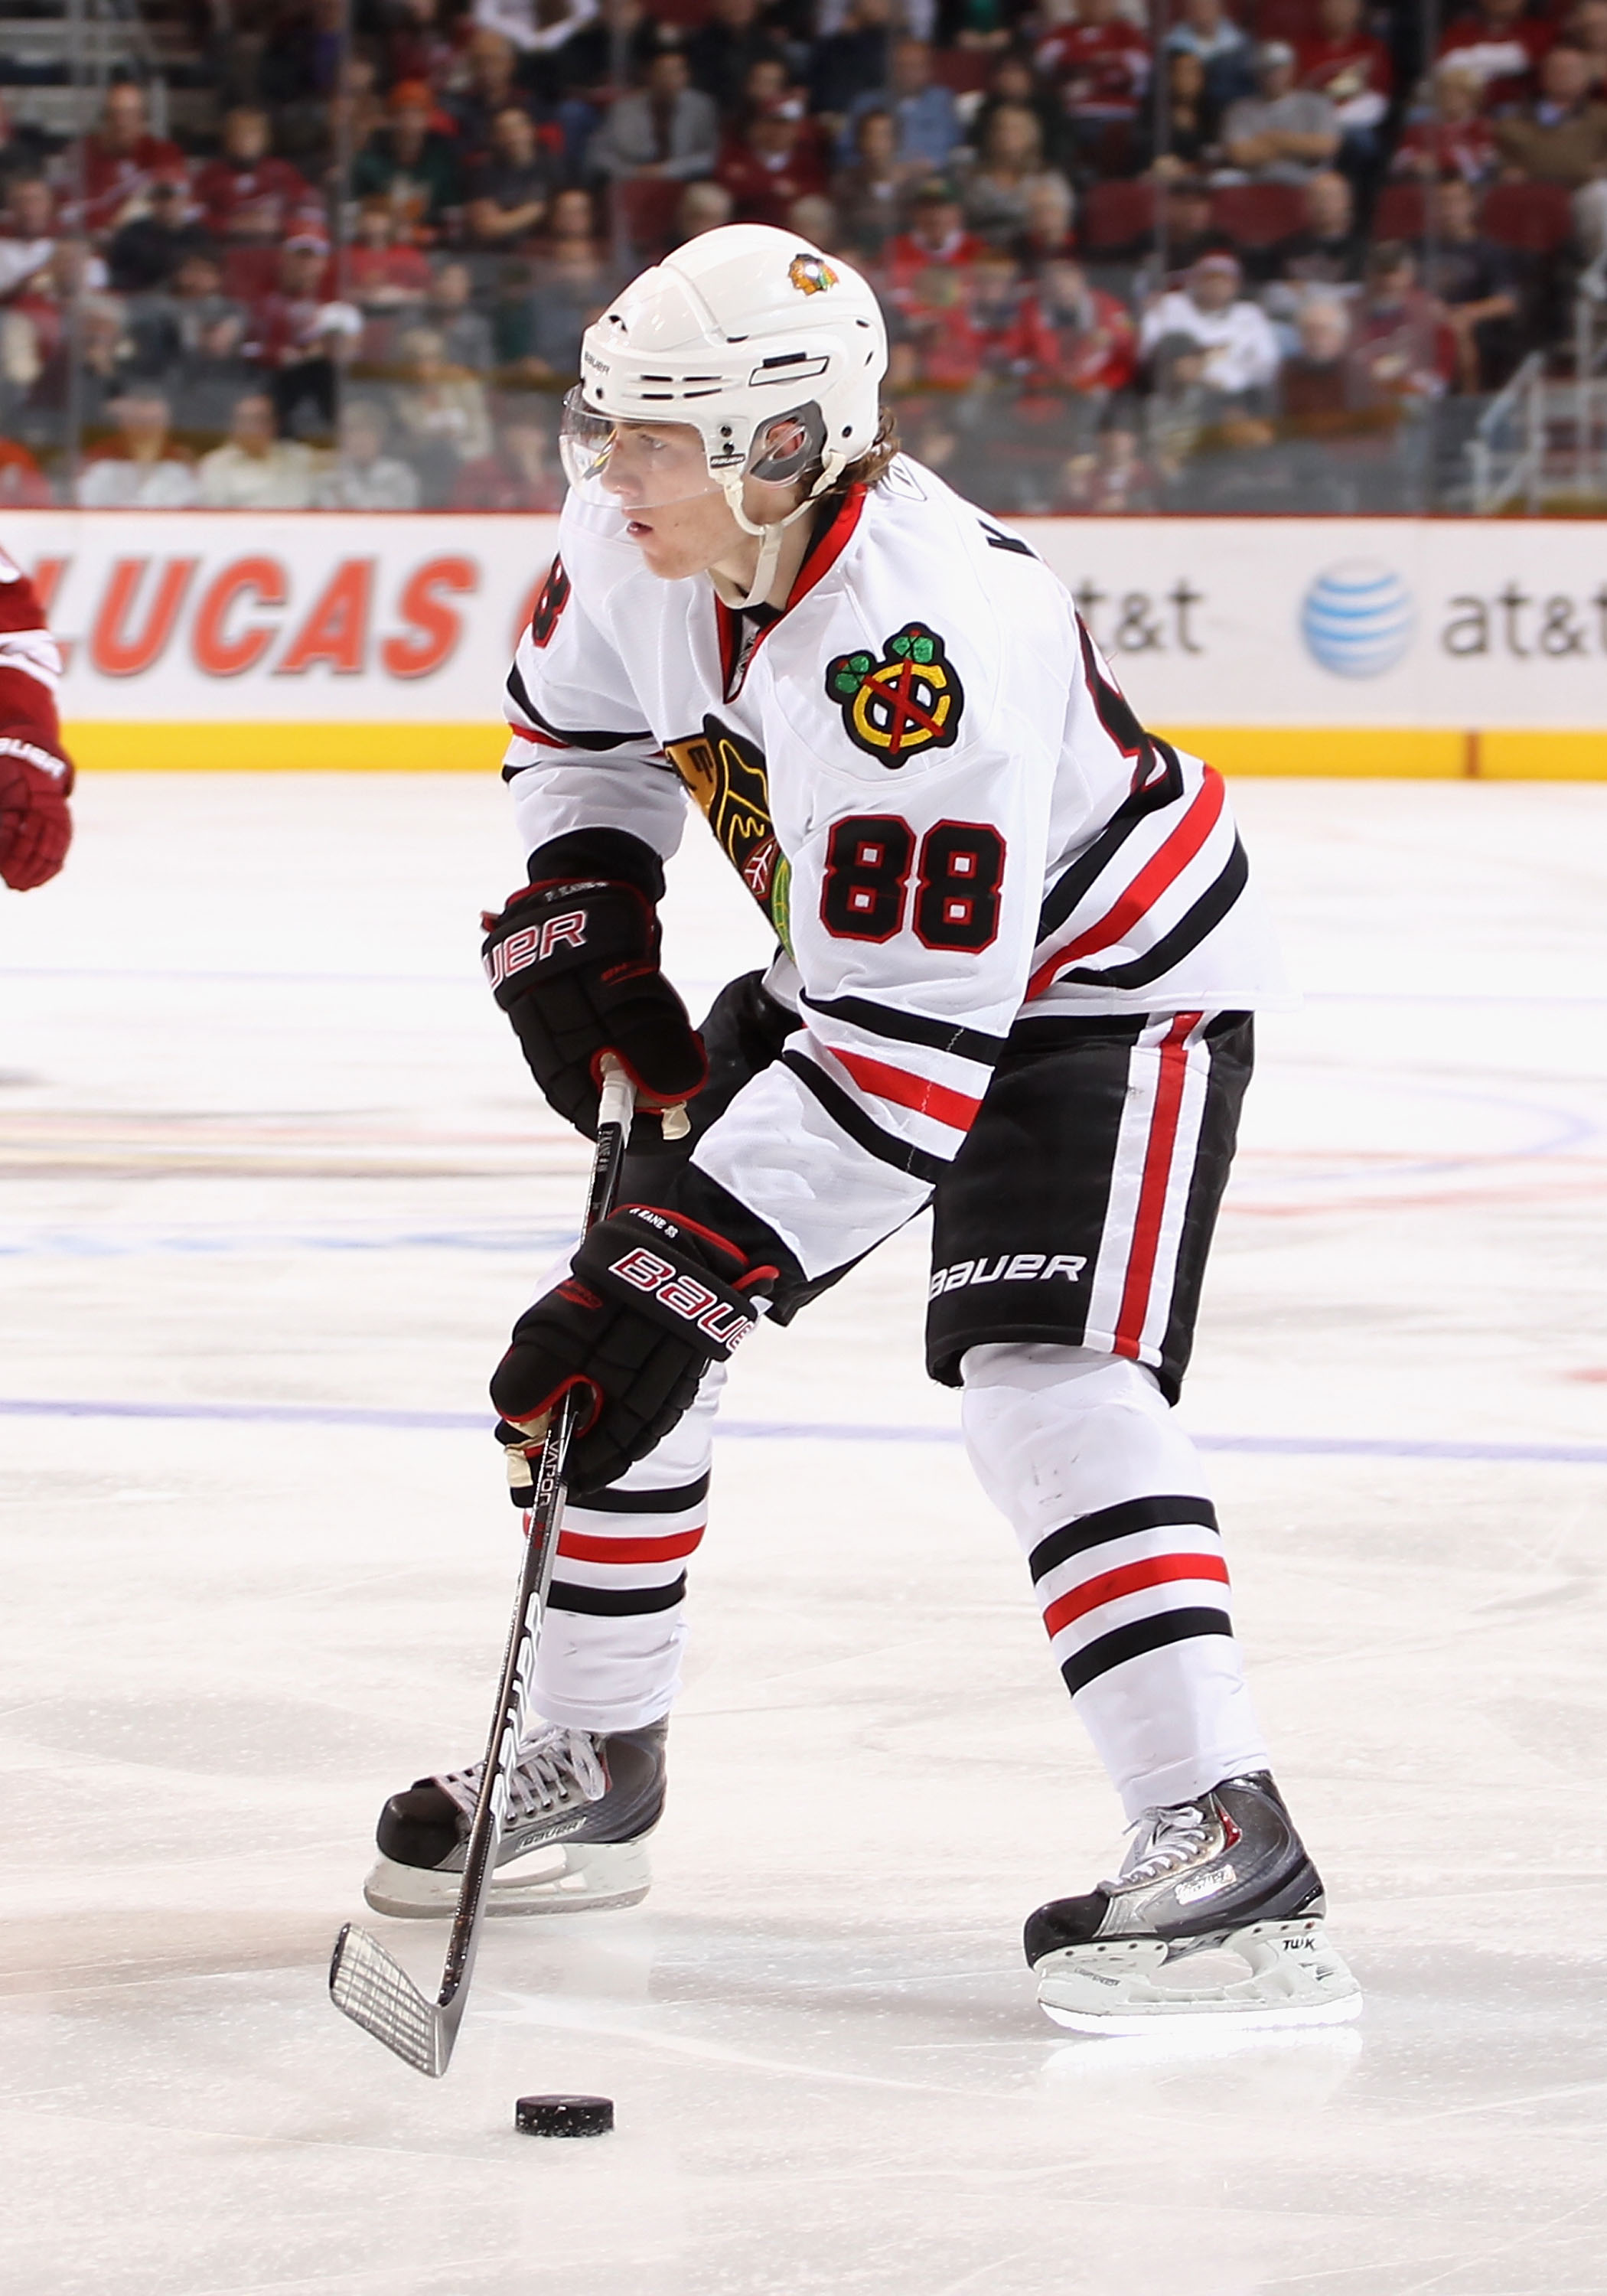 GLENDALE, AZ - MARCH 20:  Patrick Kane #88 of the Chicago Blackhawks skates with the puck during the NHL game against the Phoenix Coyotes at Jobing.com Arena on March 20, 2011 in Glendale, Arizona. The Blackhawks defeated the Coyotes 2-1.  (Photo by Chris